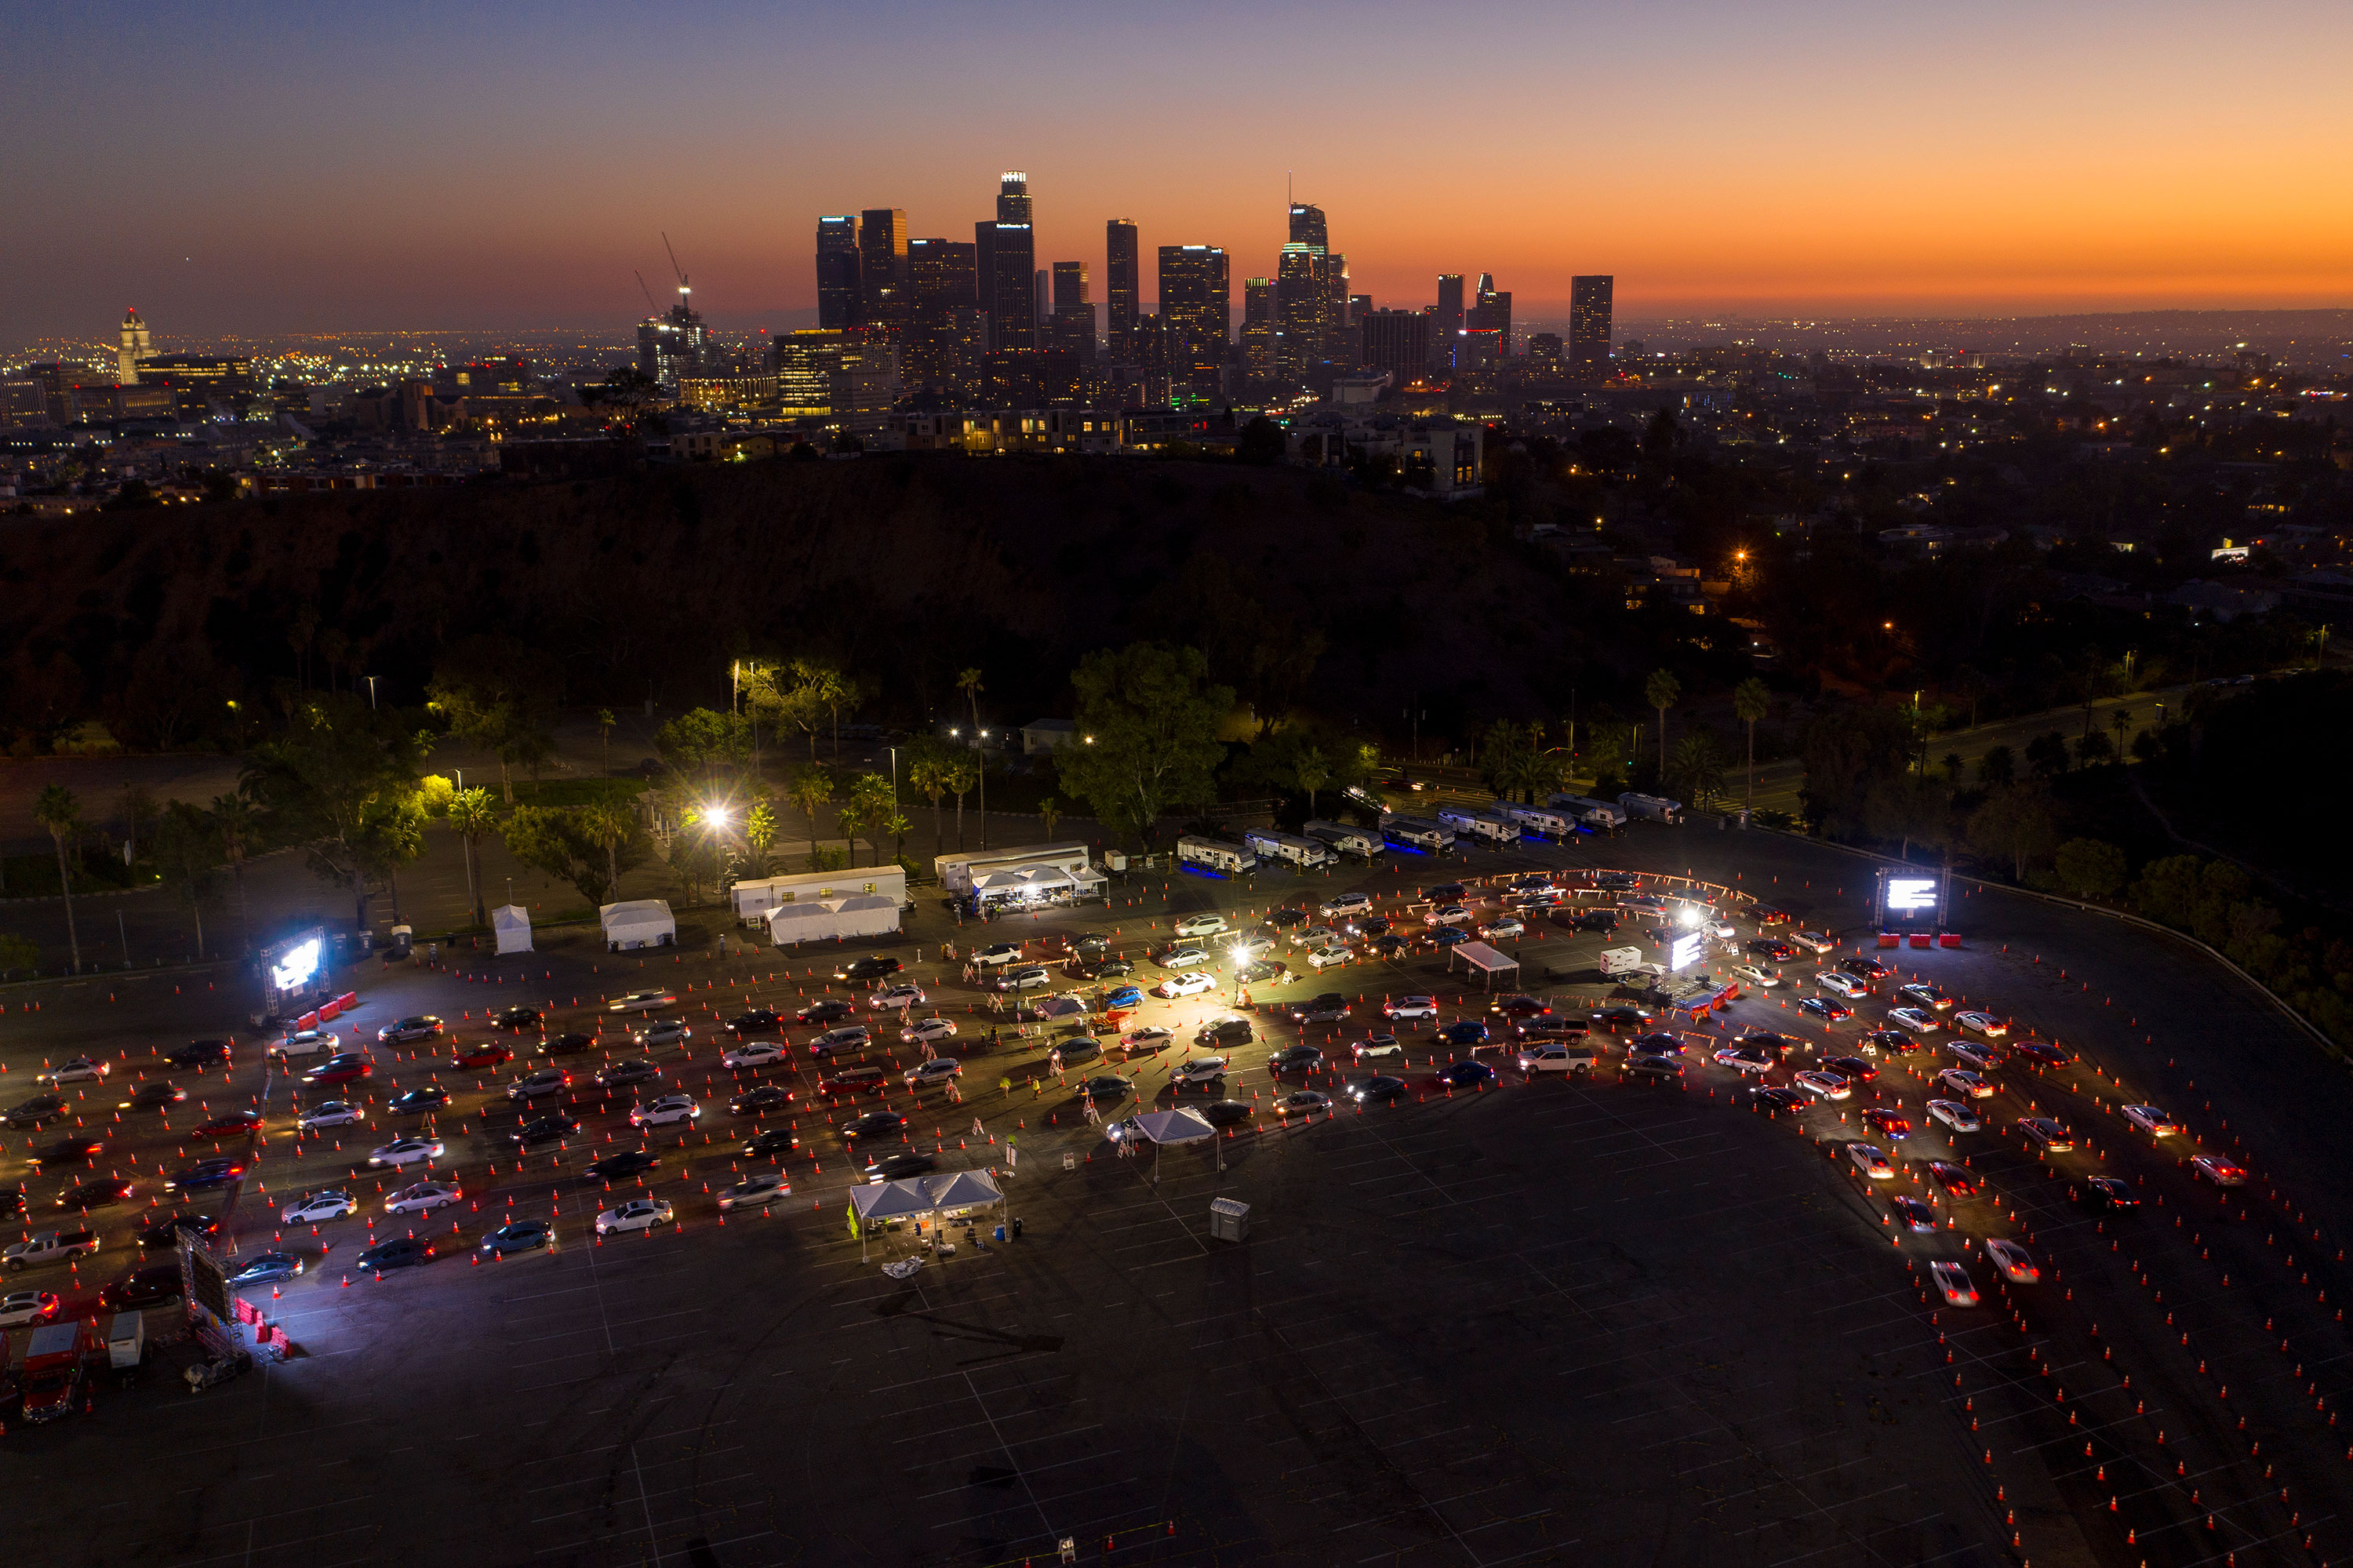 In this image taken from a drone, cars line up at Dodger Stadium in Los Angeles for Covid-19 testing on November 14.